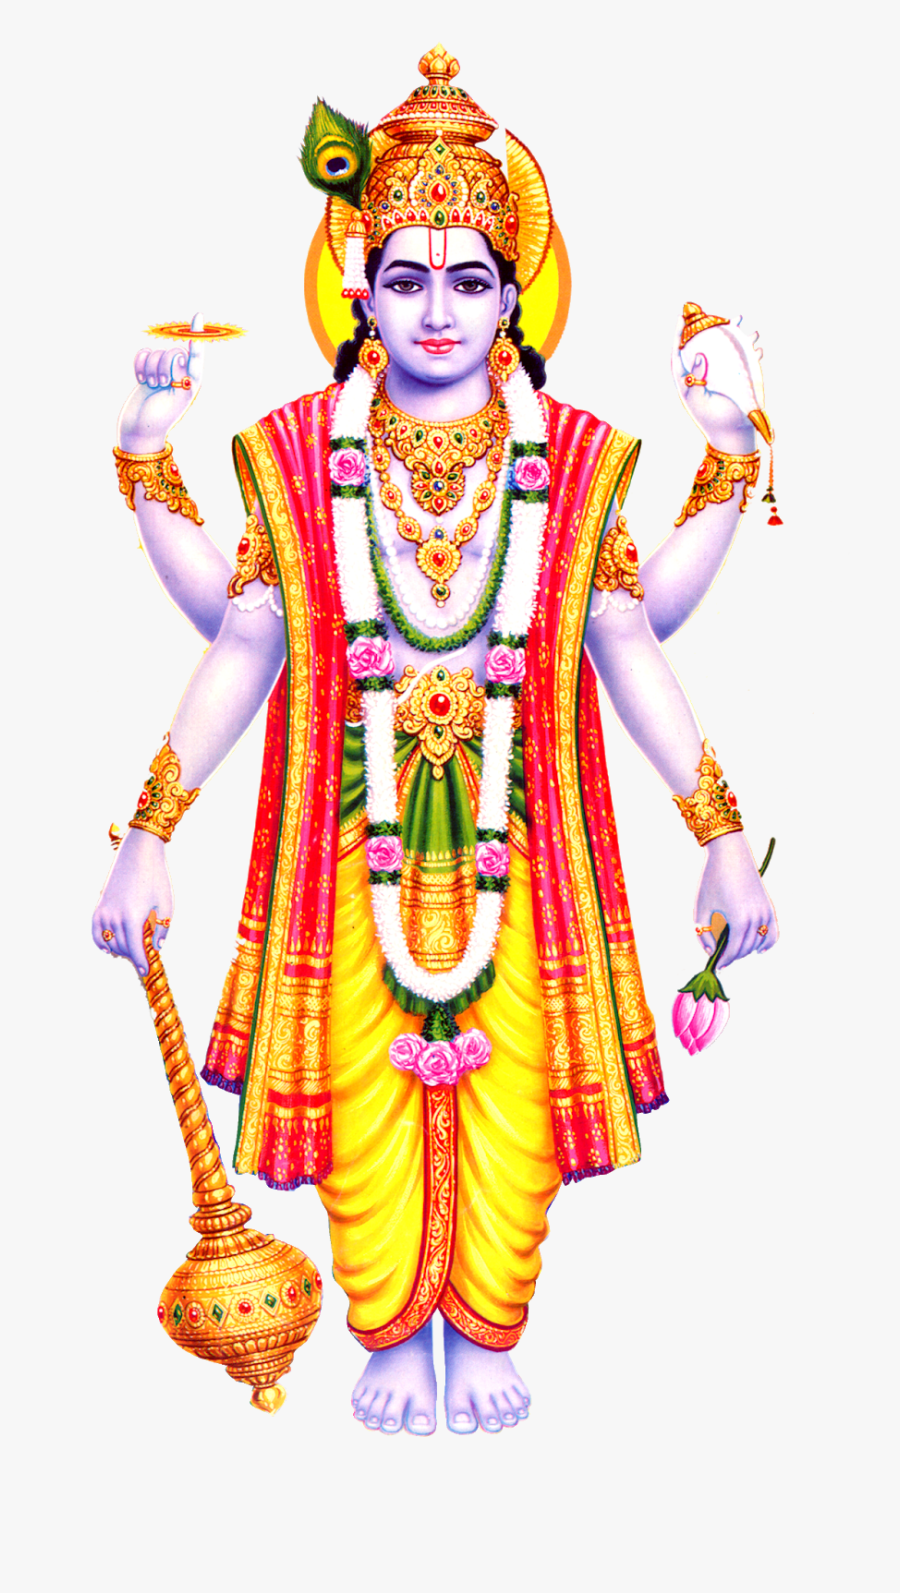 Vishnu Hindu God, Transparent Clipart